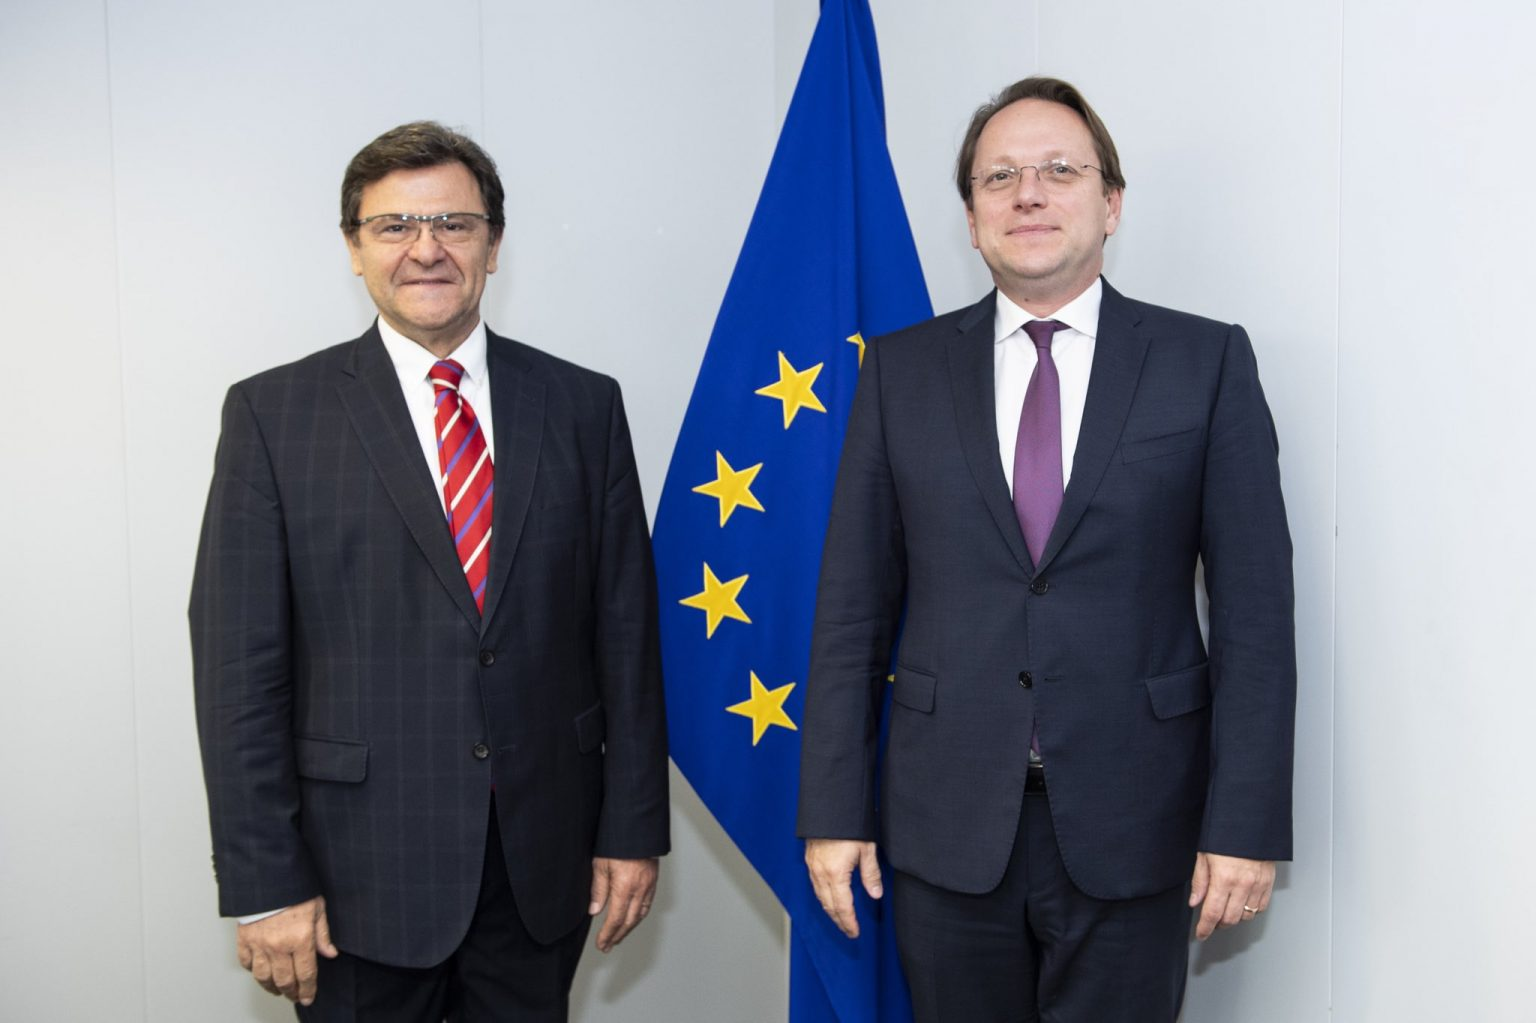 Albania: Mazi, Varhelyi discuss preparations for the First Intergovernmental Conference